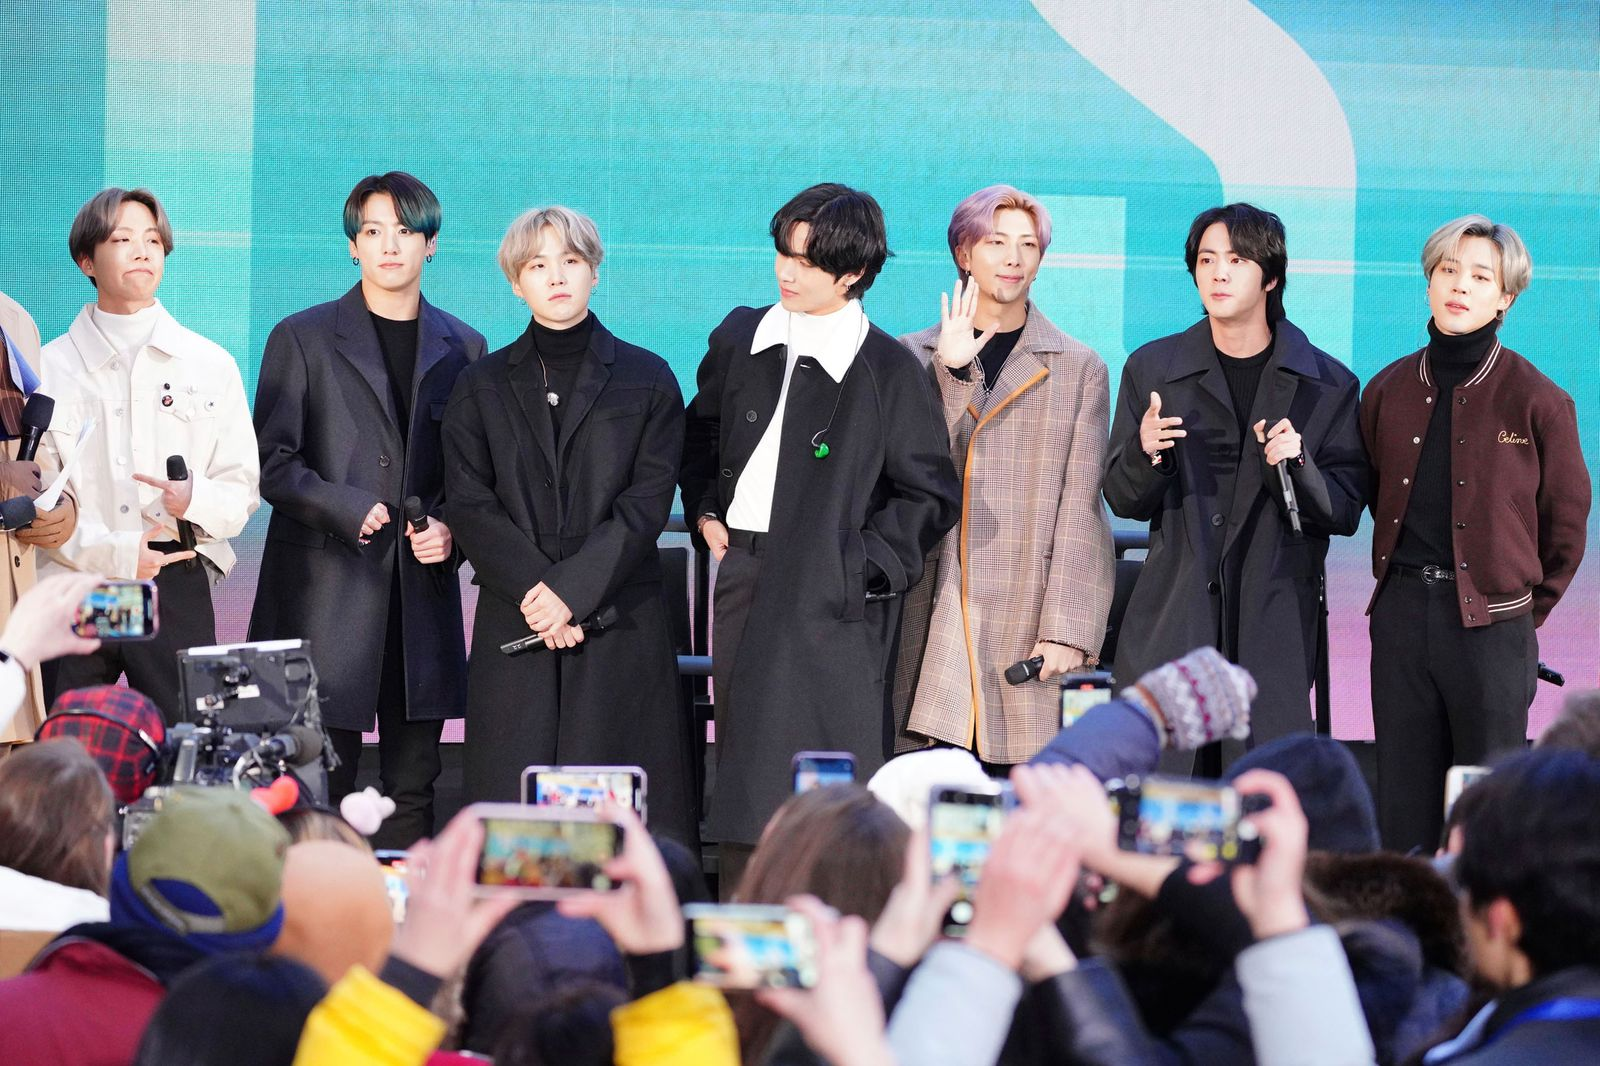 BTS visits The Today Show in New York City - 2/21/20